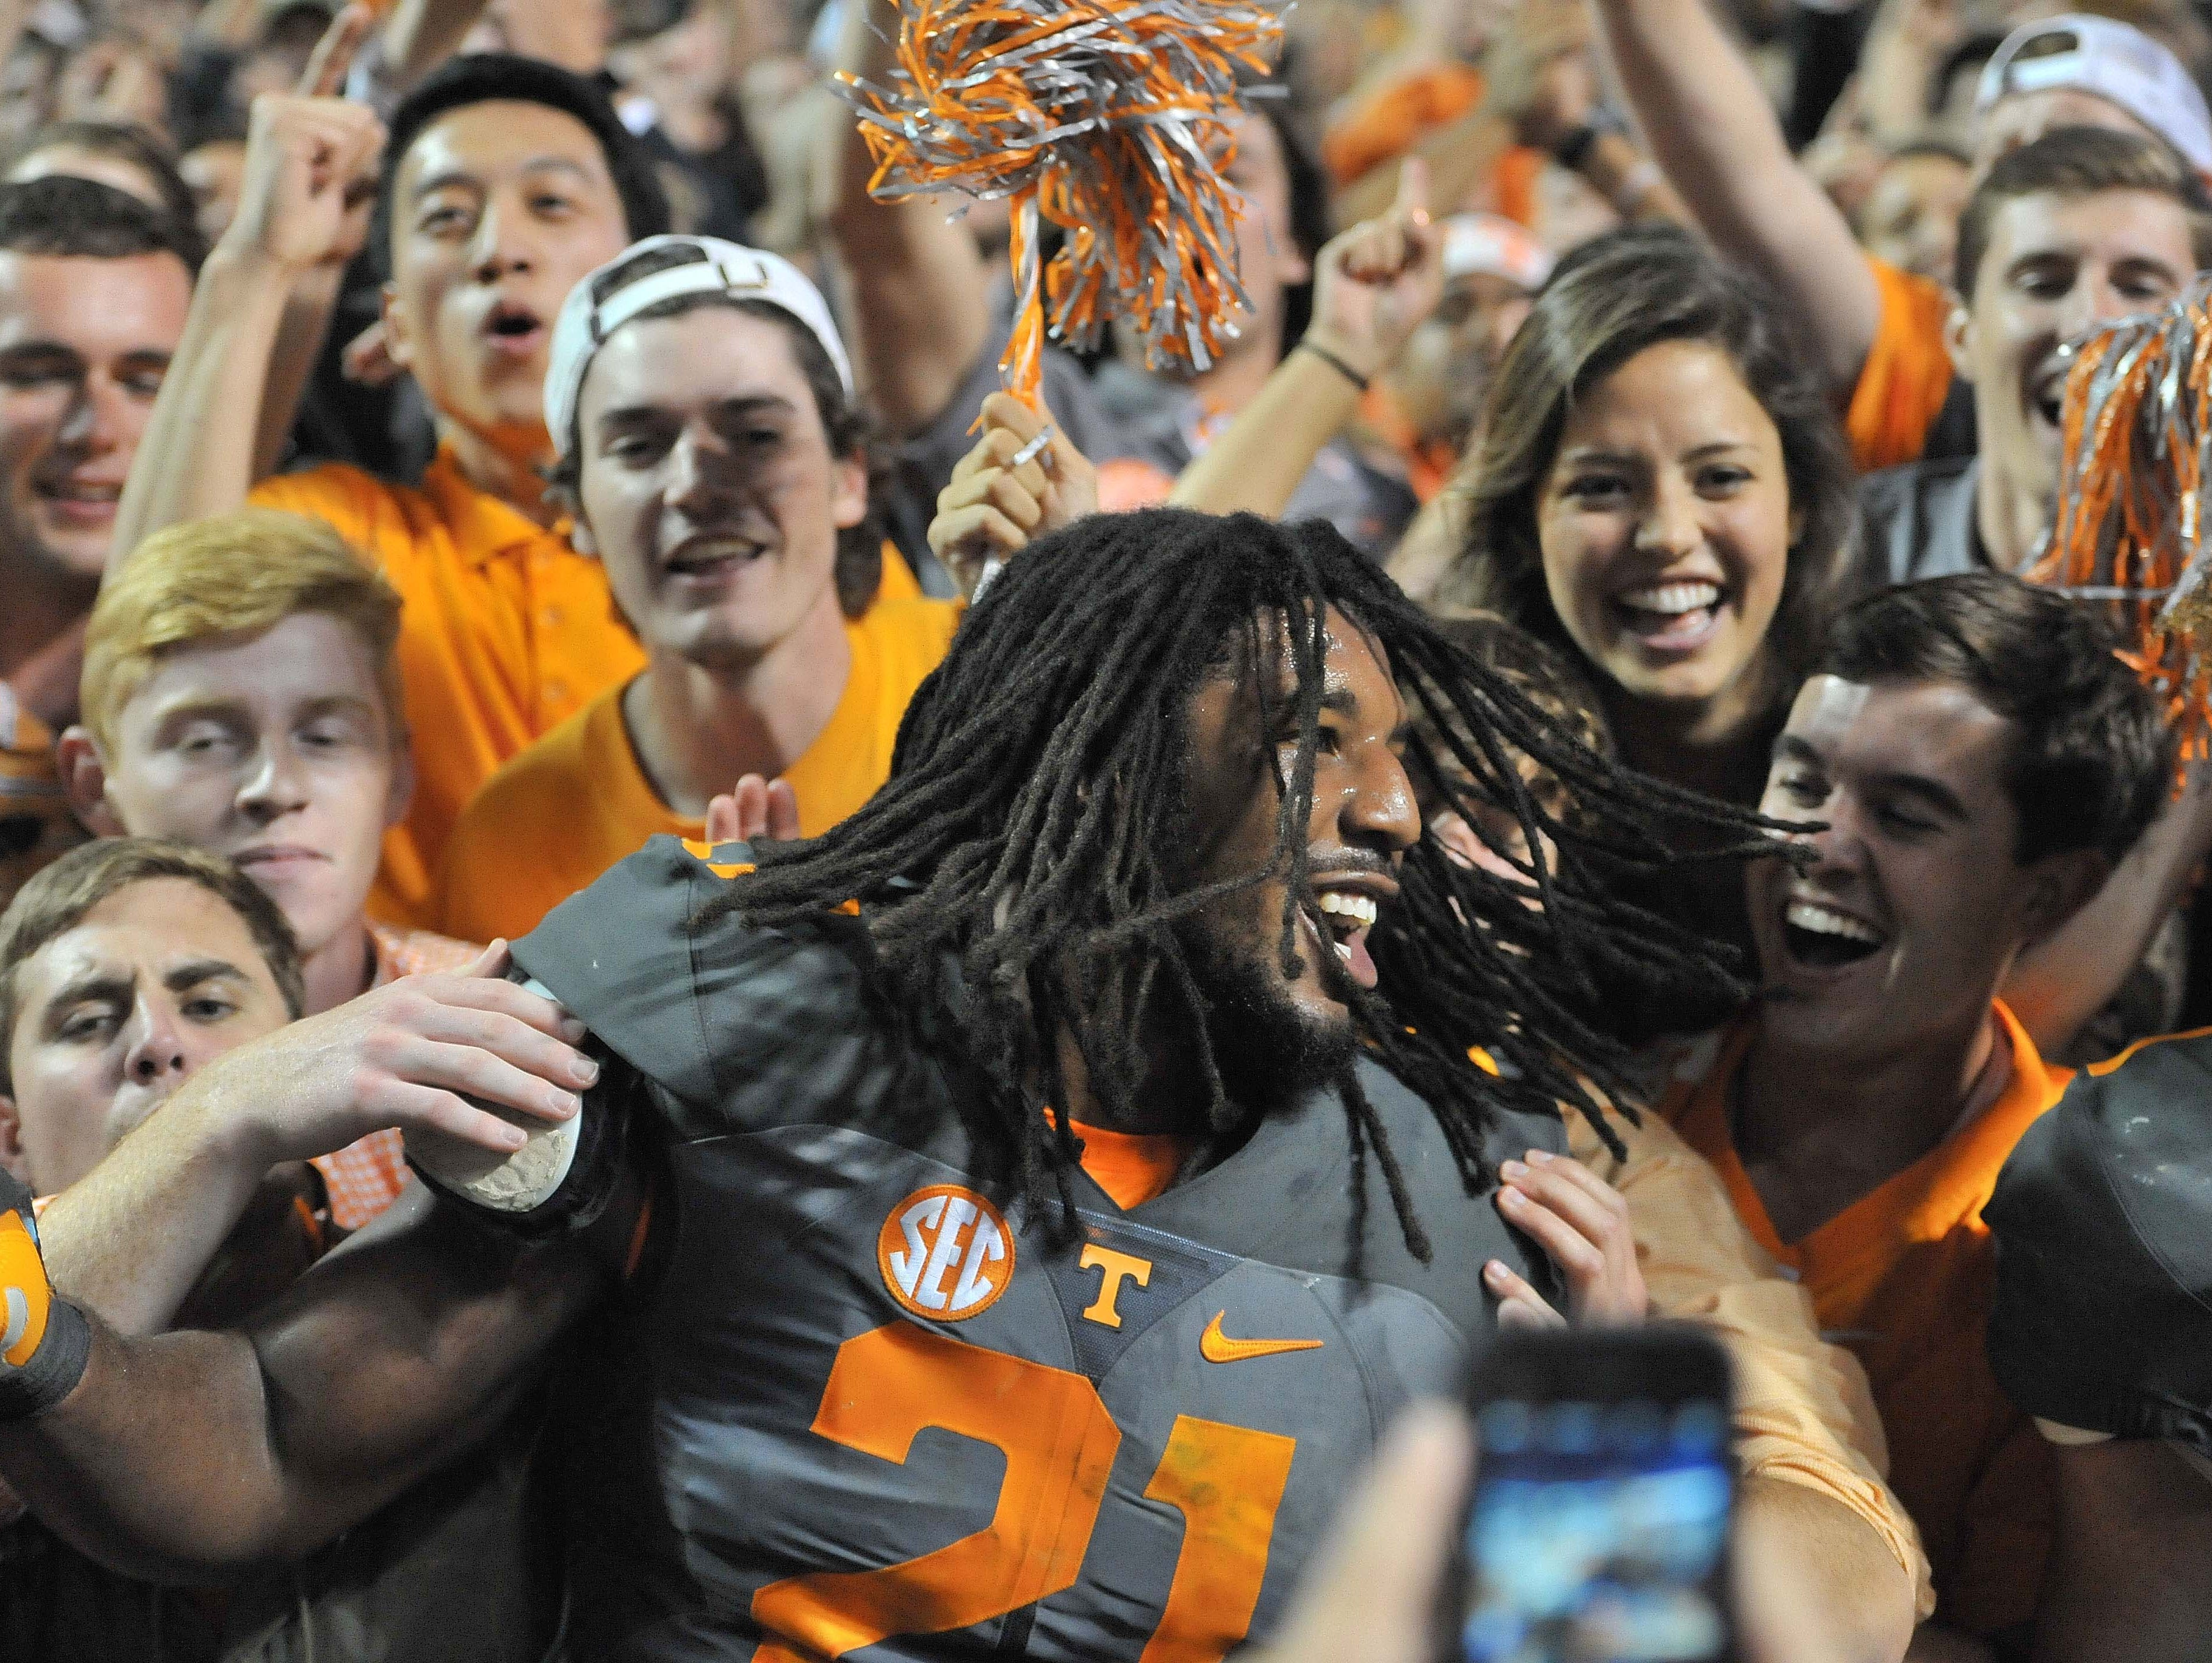 Oct 10, 2015; Knoxville, TN, USA; Tennessee Volunteers linebacker Jalen Reeves-Maybin (21) celebrates with fans after defeating the Georgia Bulldogs during the second half at Neyland Stadium. Tennessee won 38-31.